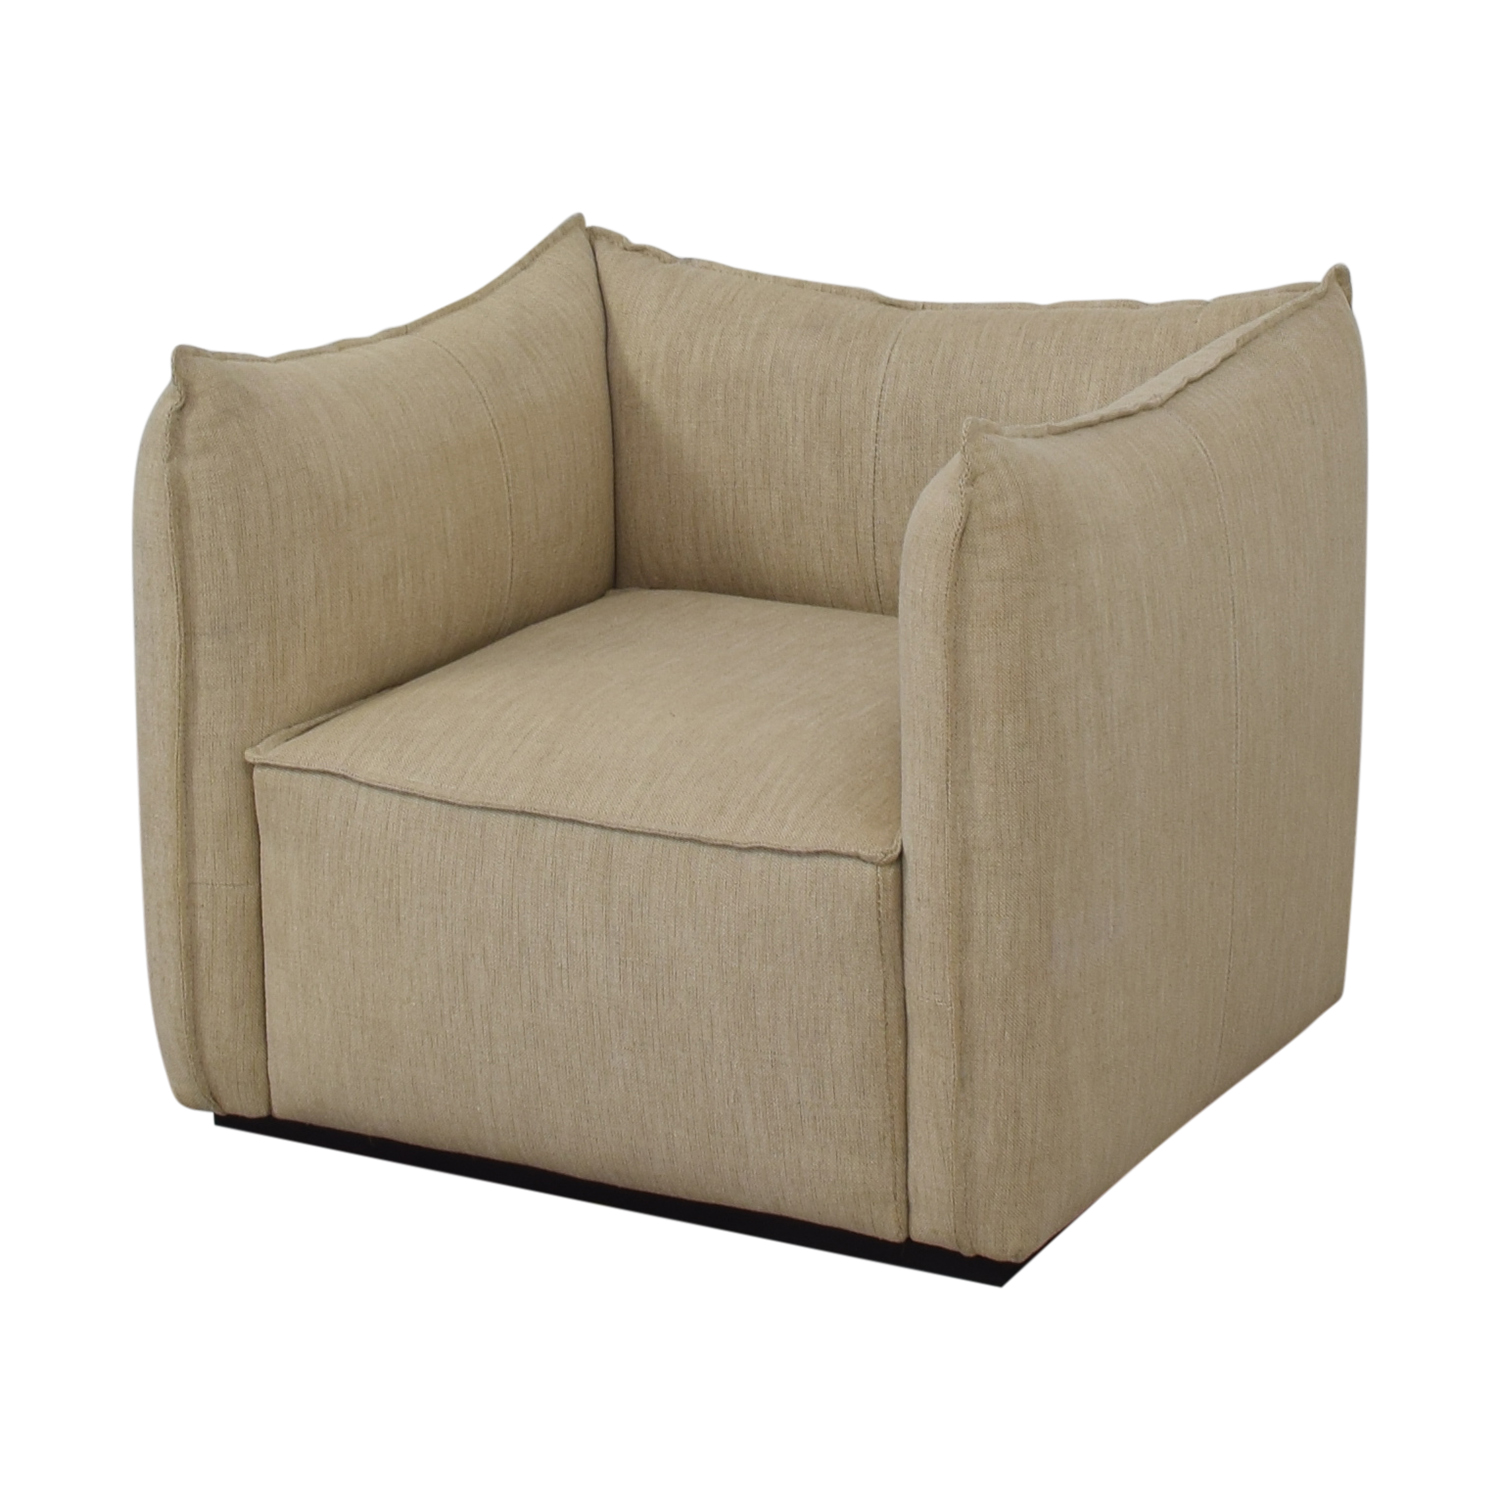 Restoration Hardware Restoration Hardware Peyton Arm Chair beige